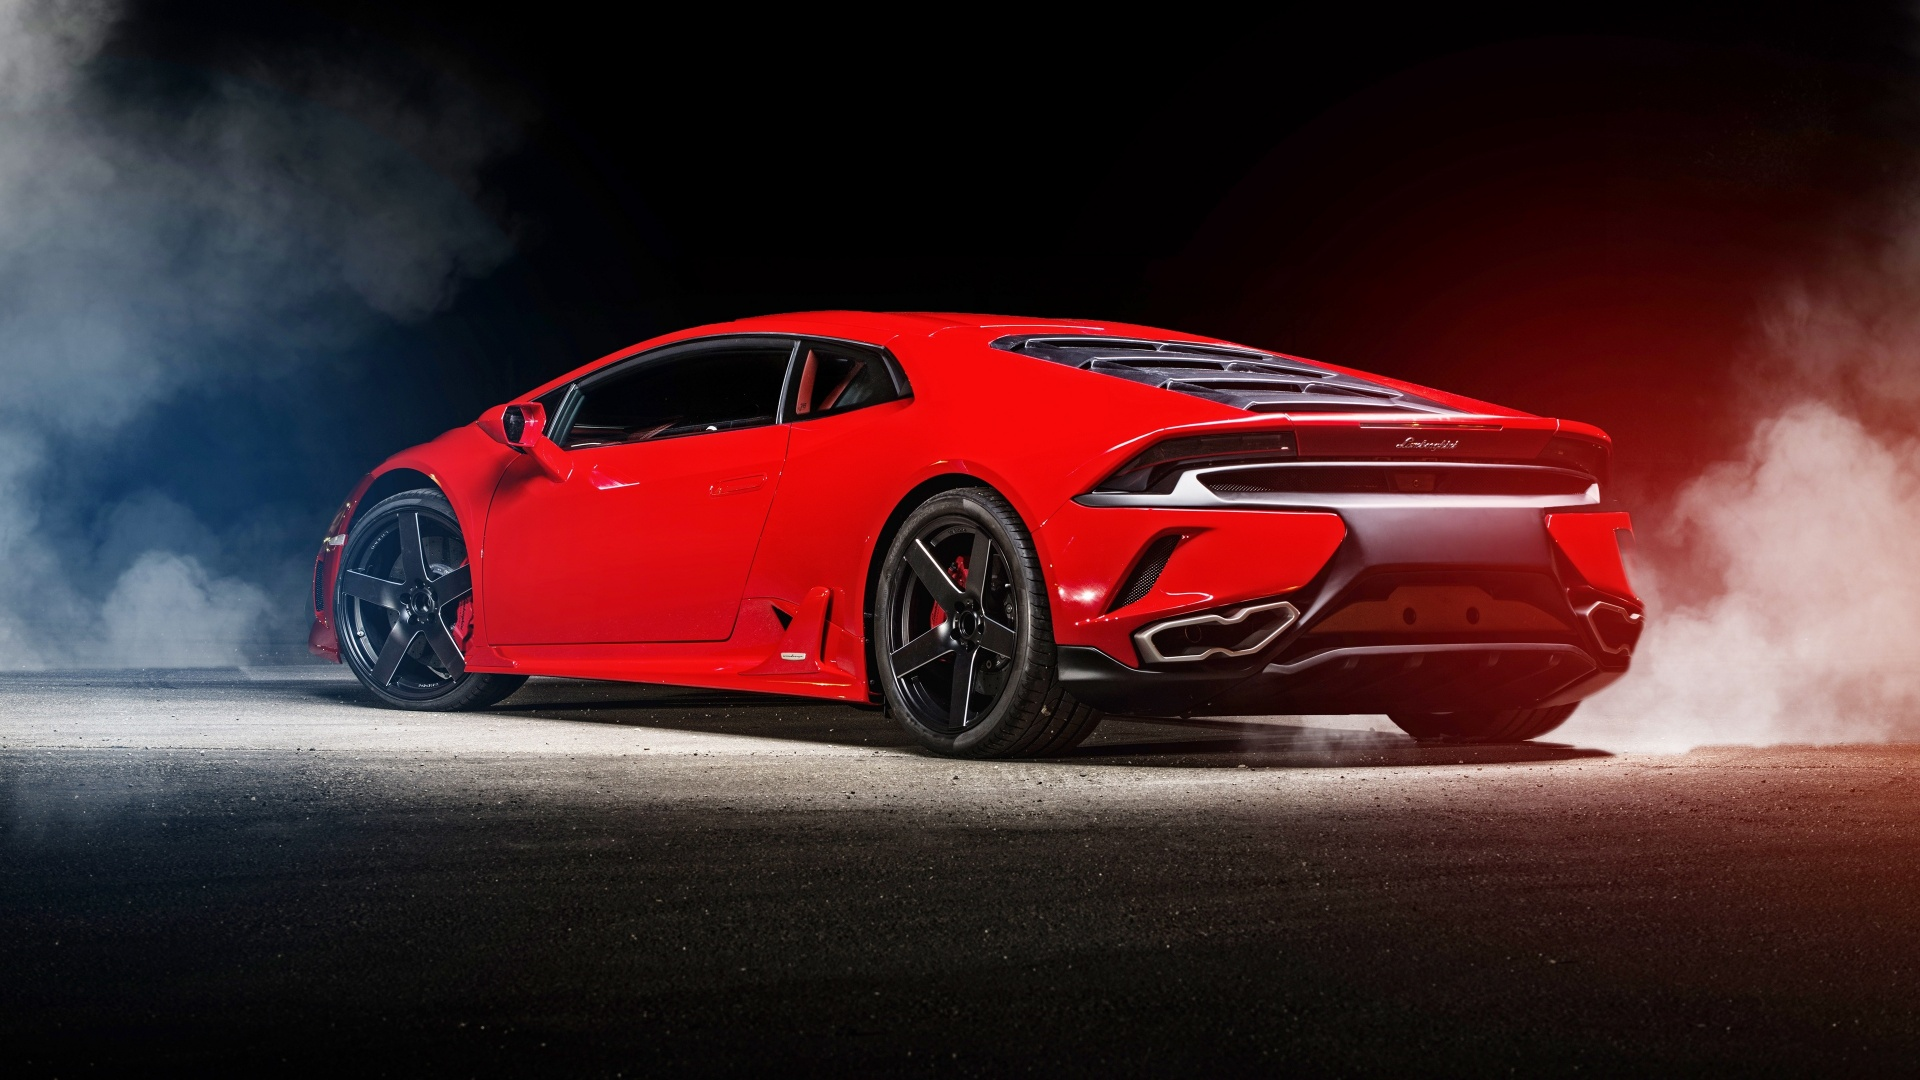 Lamborghini Huracan Ares Design Wallpapers 1920x1080 513793